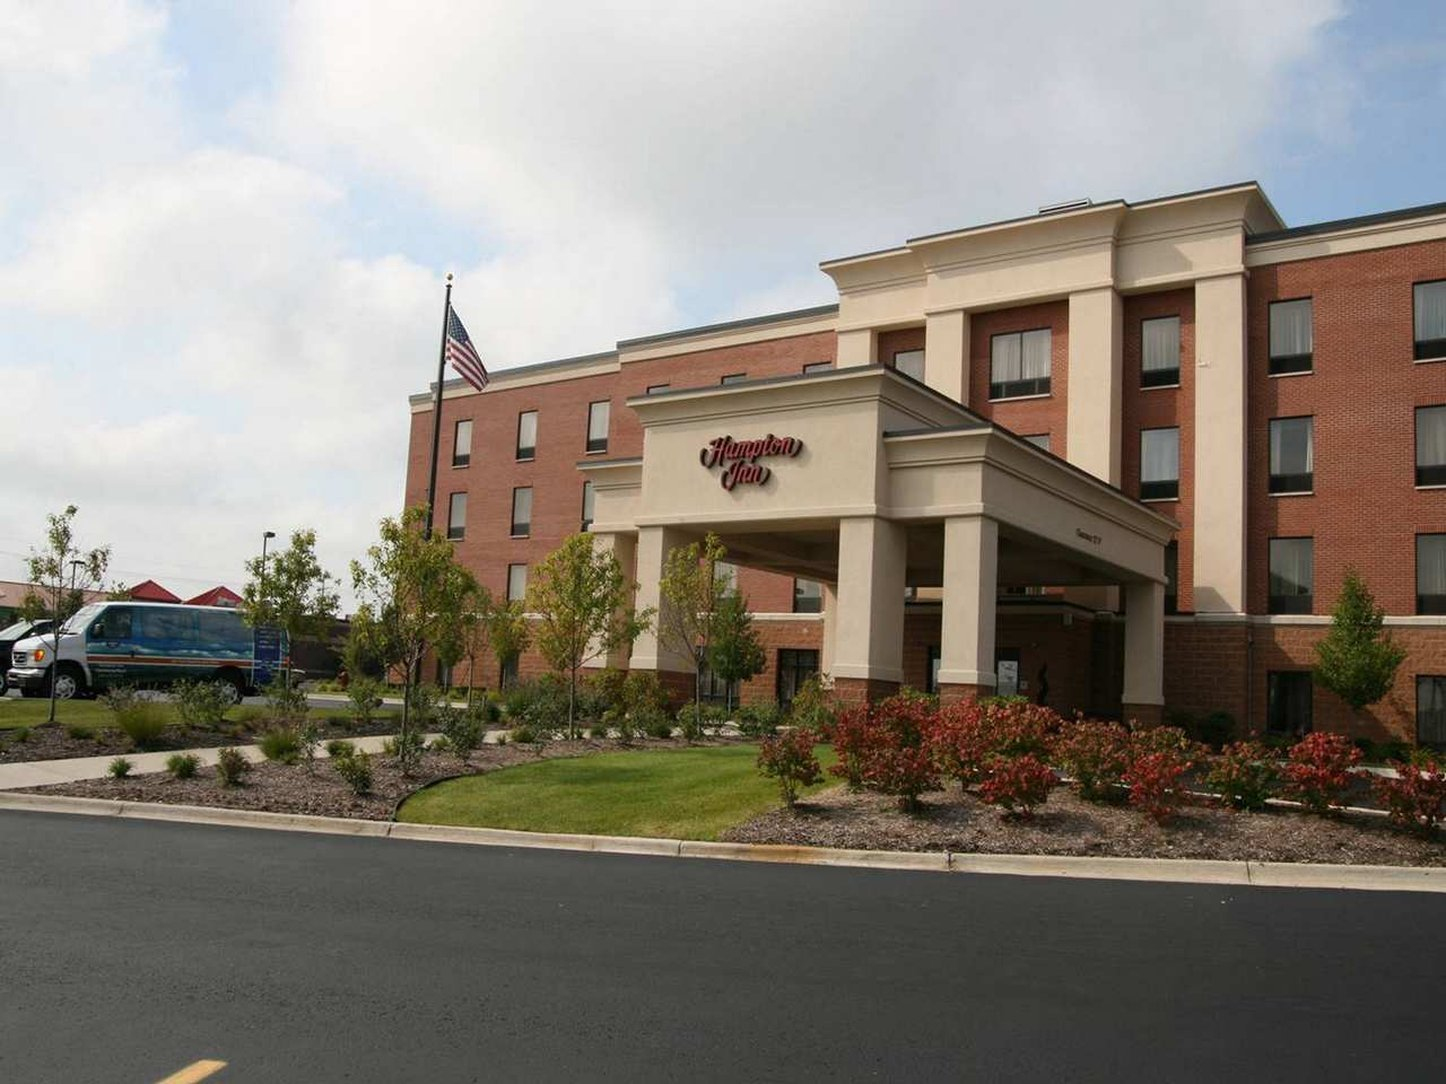 Hampton Inn - Detroit / Novi at 14 Mile Road